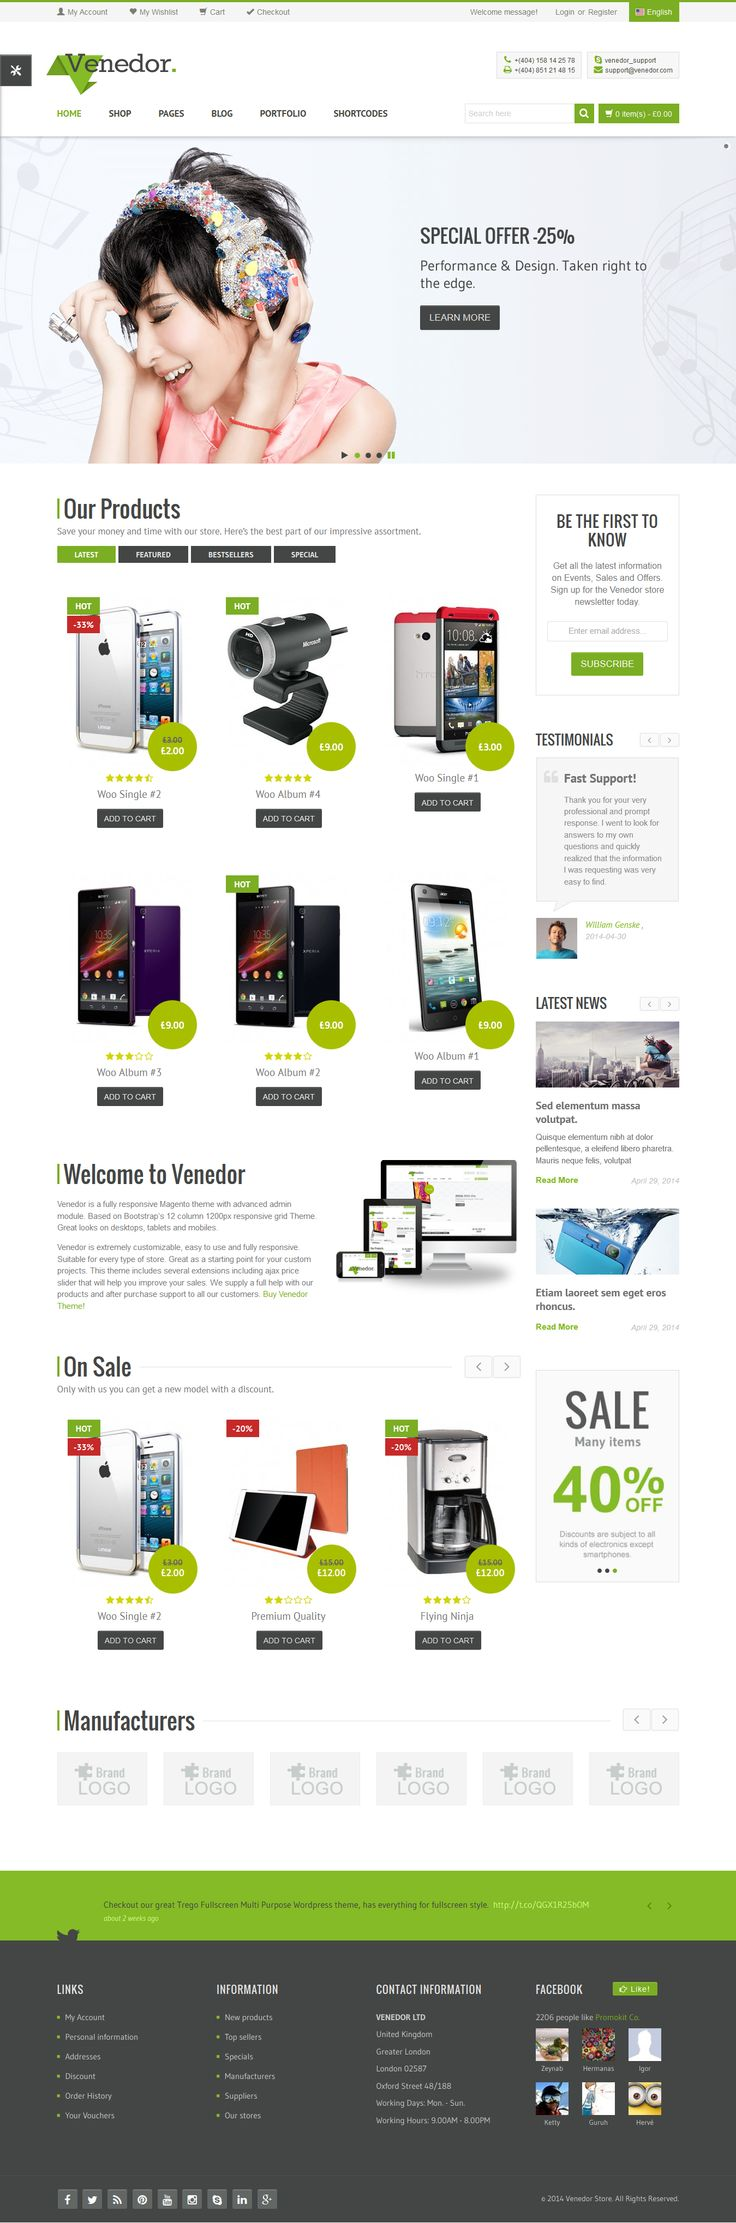 Venedor is Ultimate Multi-Purpose WordPress Theme that is extremely customizable, easy to use and fully responsive. Suitable for every type of business, portfolio, blog and ecommerce sites. Great as a starting point for your custom projects. Venedor includes 5 different skins and its very beautiful on mobile devices. on